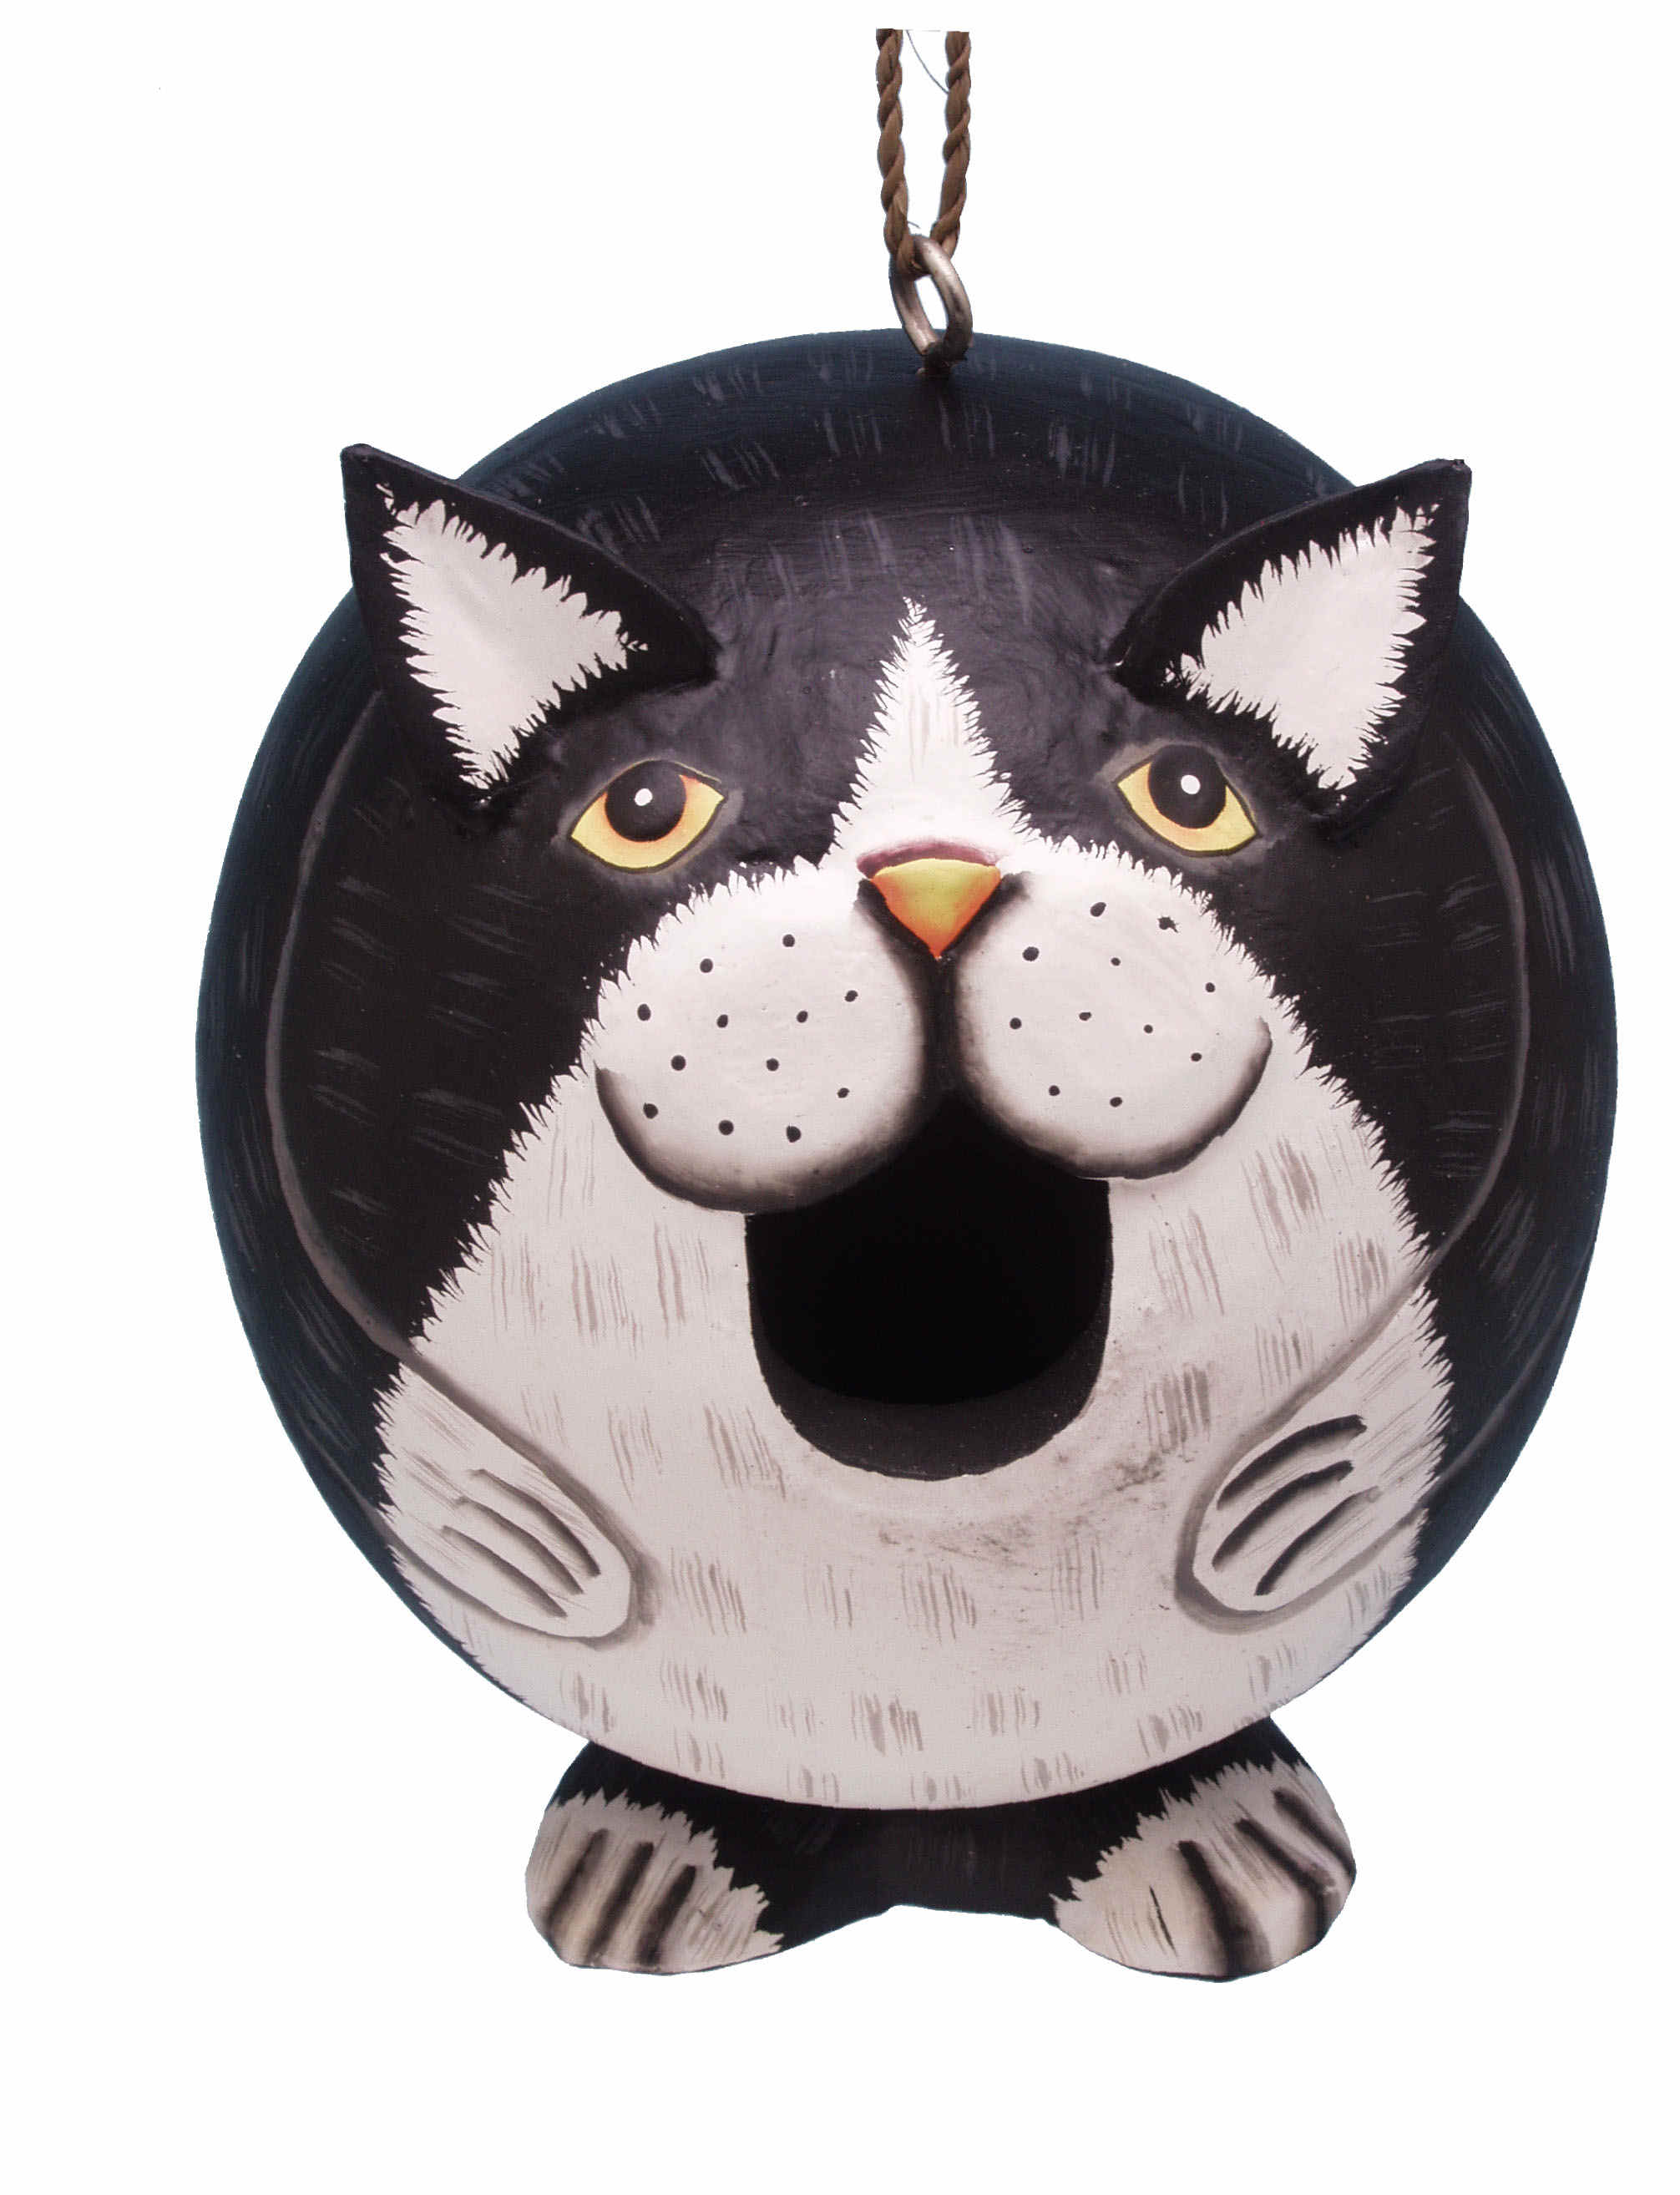 Black and White Cat Gord-O Birdhouse